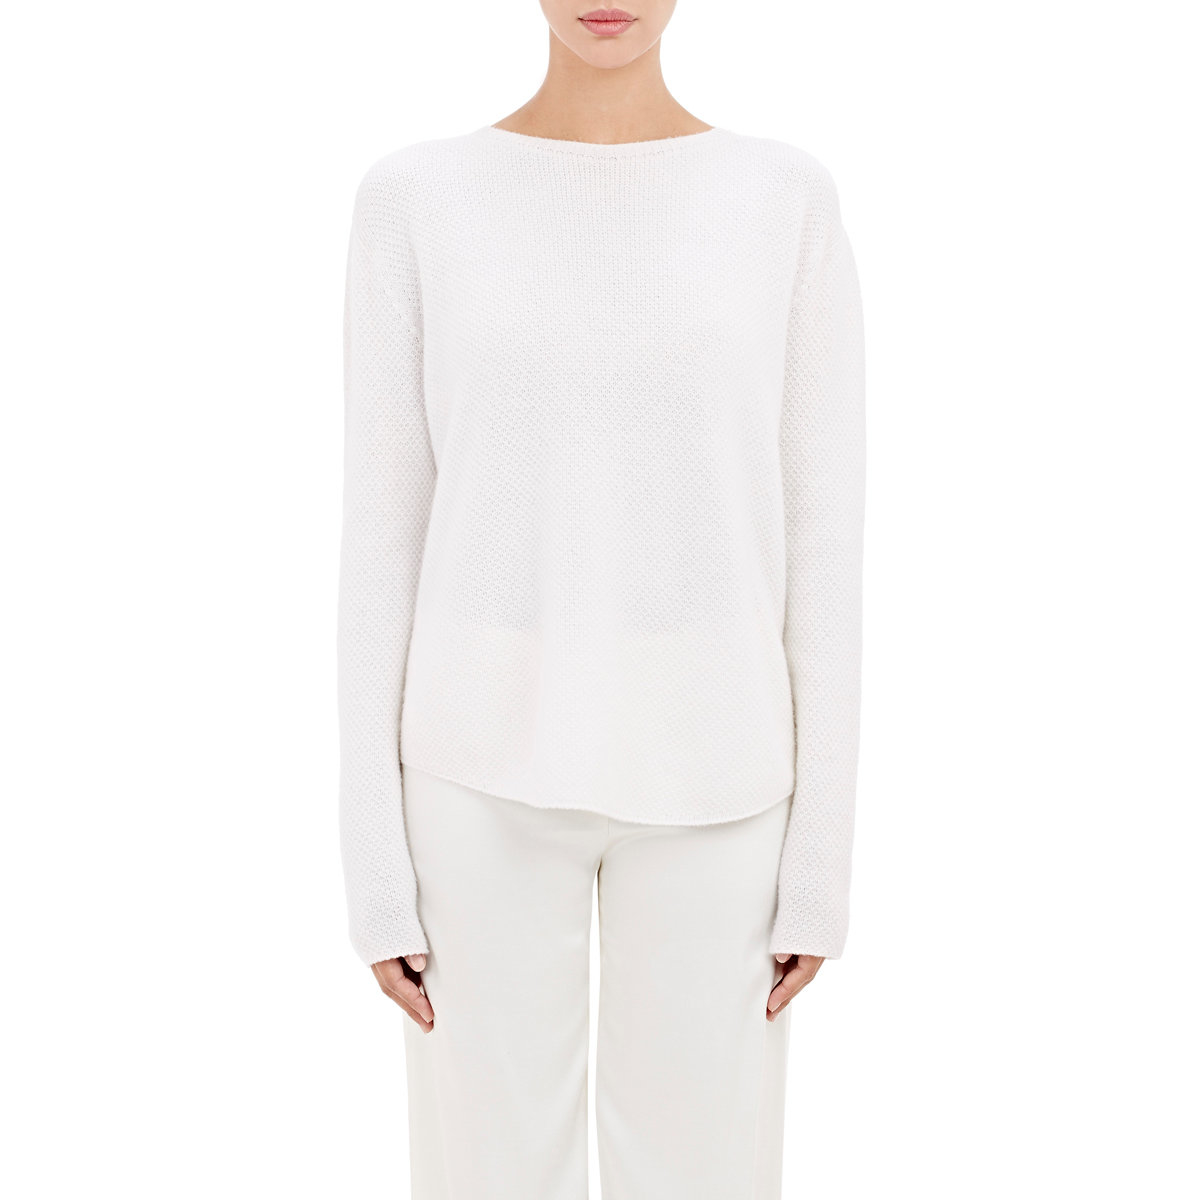 62e0173c2eb292 Lyst - Helmut Lang Women s Cashmere Sweater in White